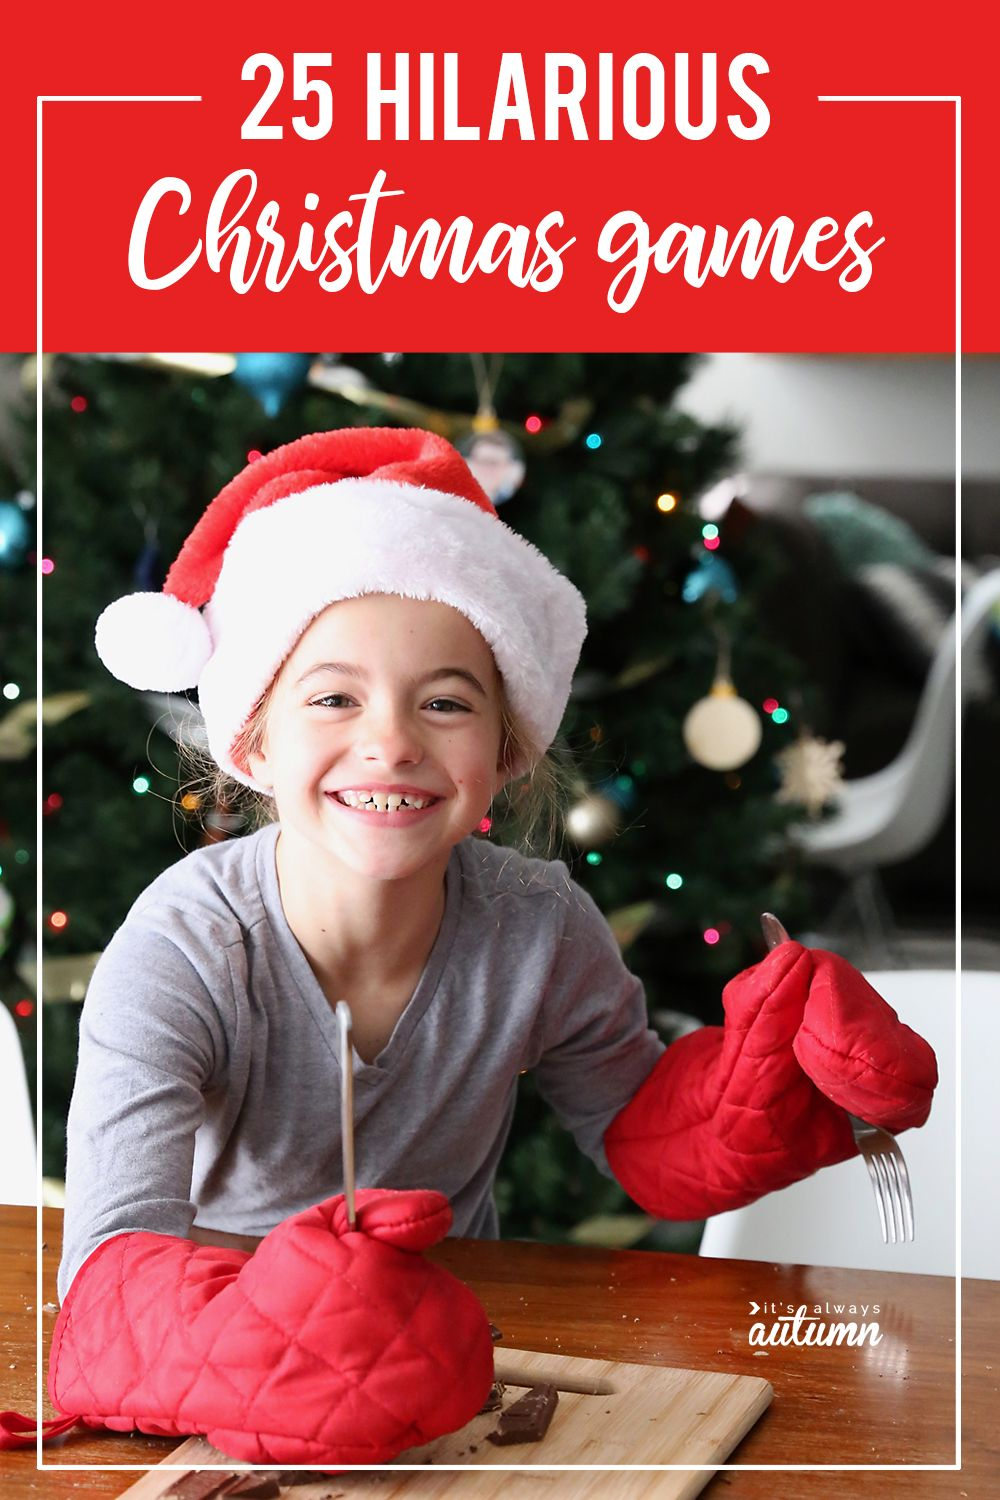 25 Christmas games that will have everyone laughing 25 hilarious Christmas games that will have everyone laughing!